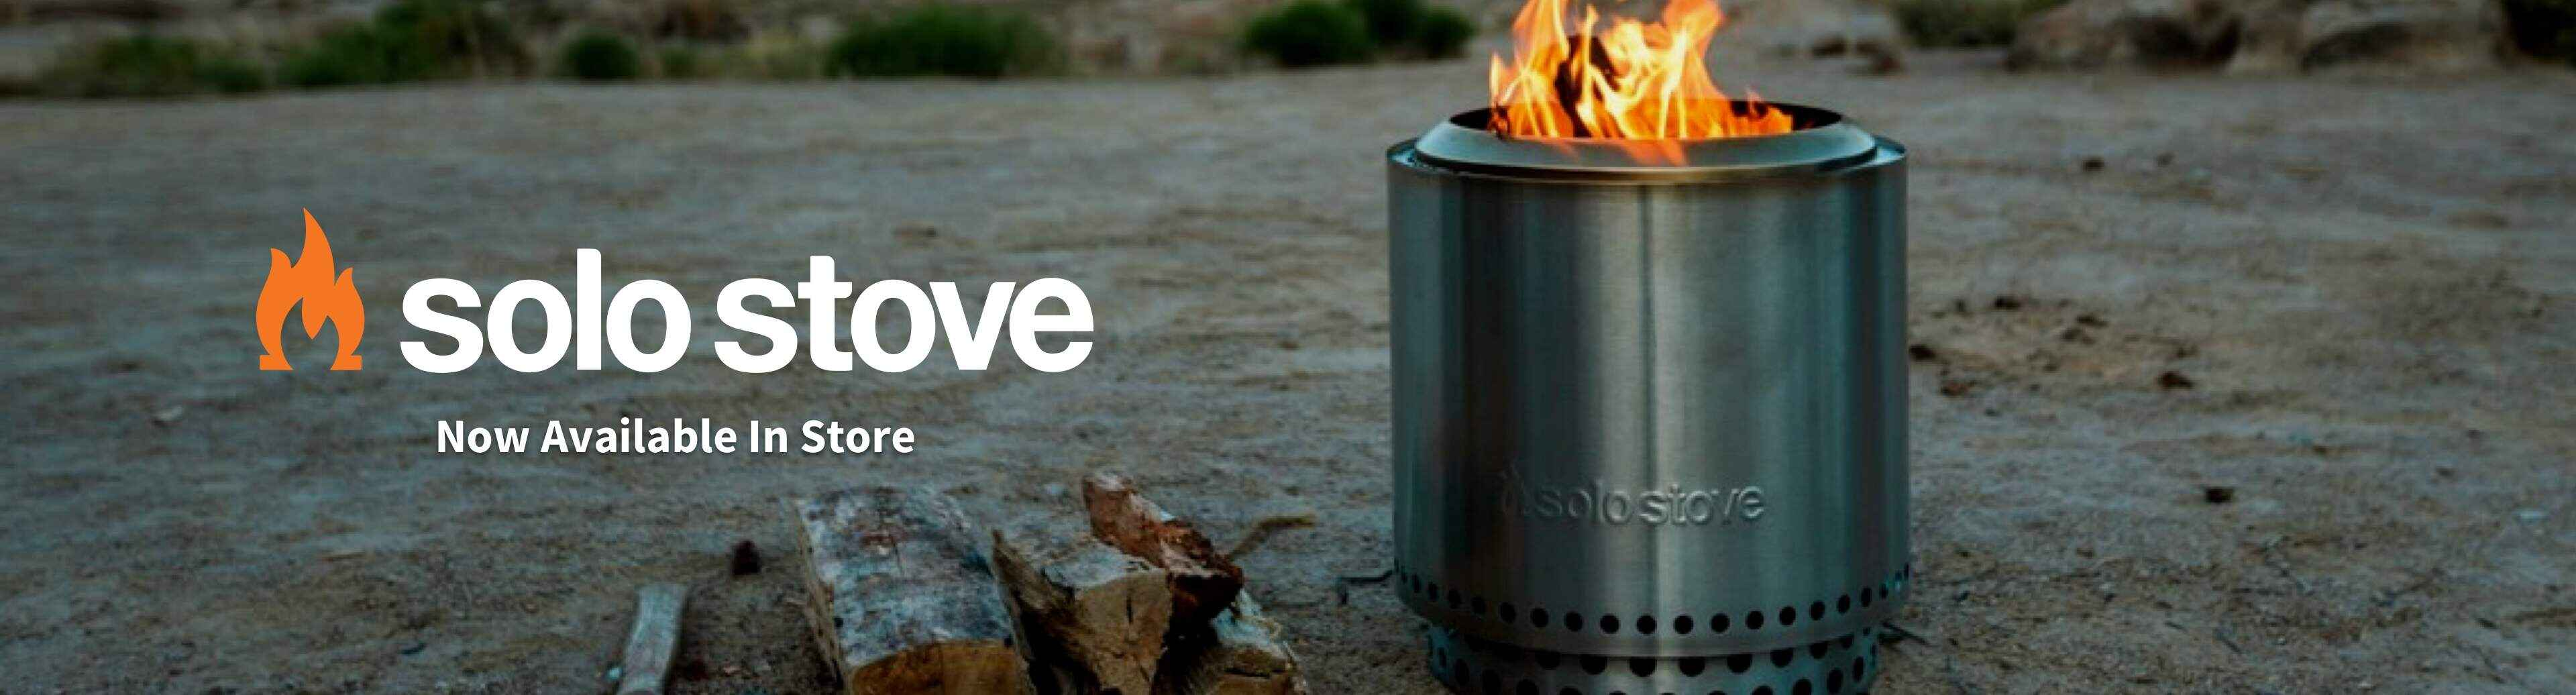 Shop Solo Stove at Foley Hardware - Now Available In Store